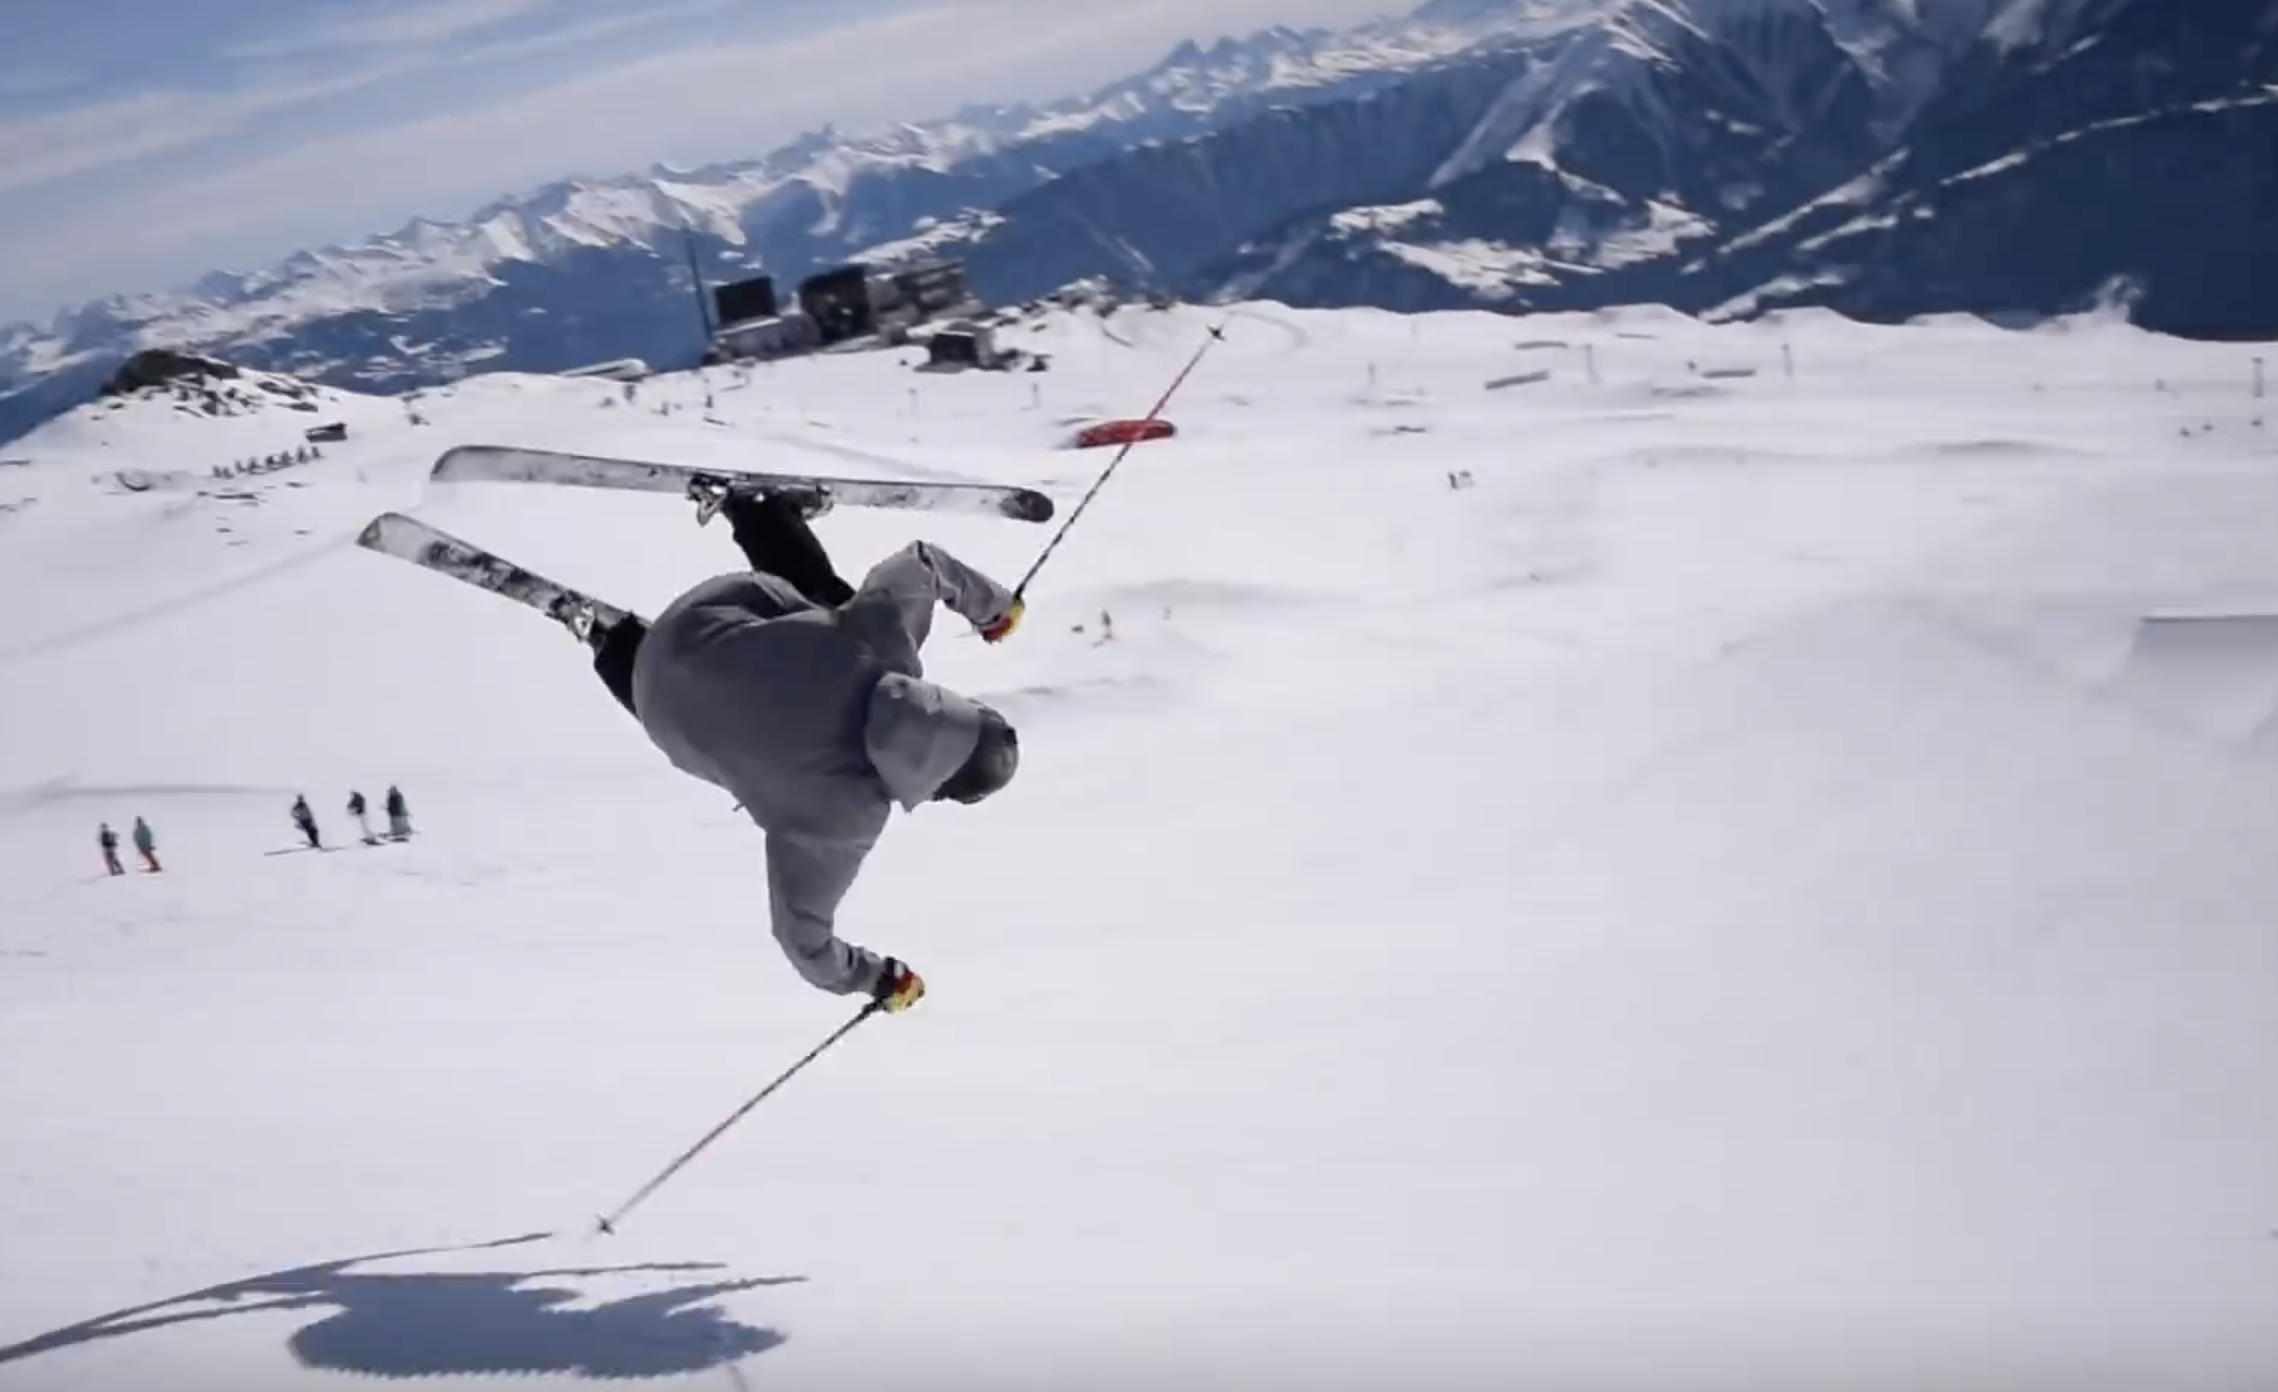 How to Ski Corbets Couloir - Fall-Line Skiing